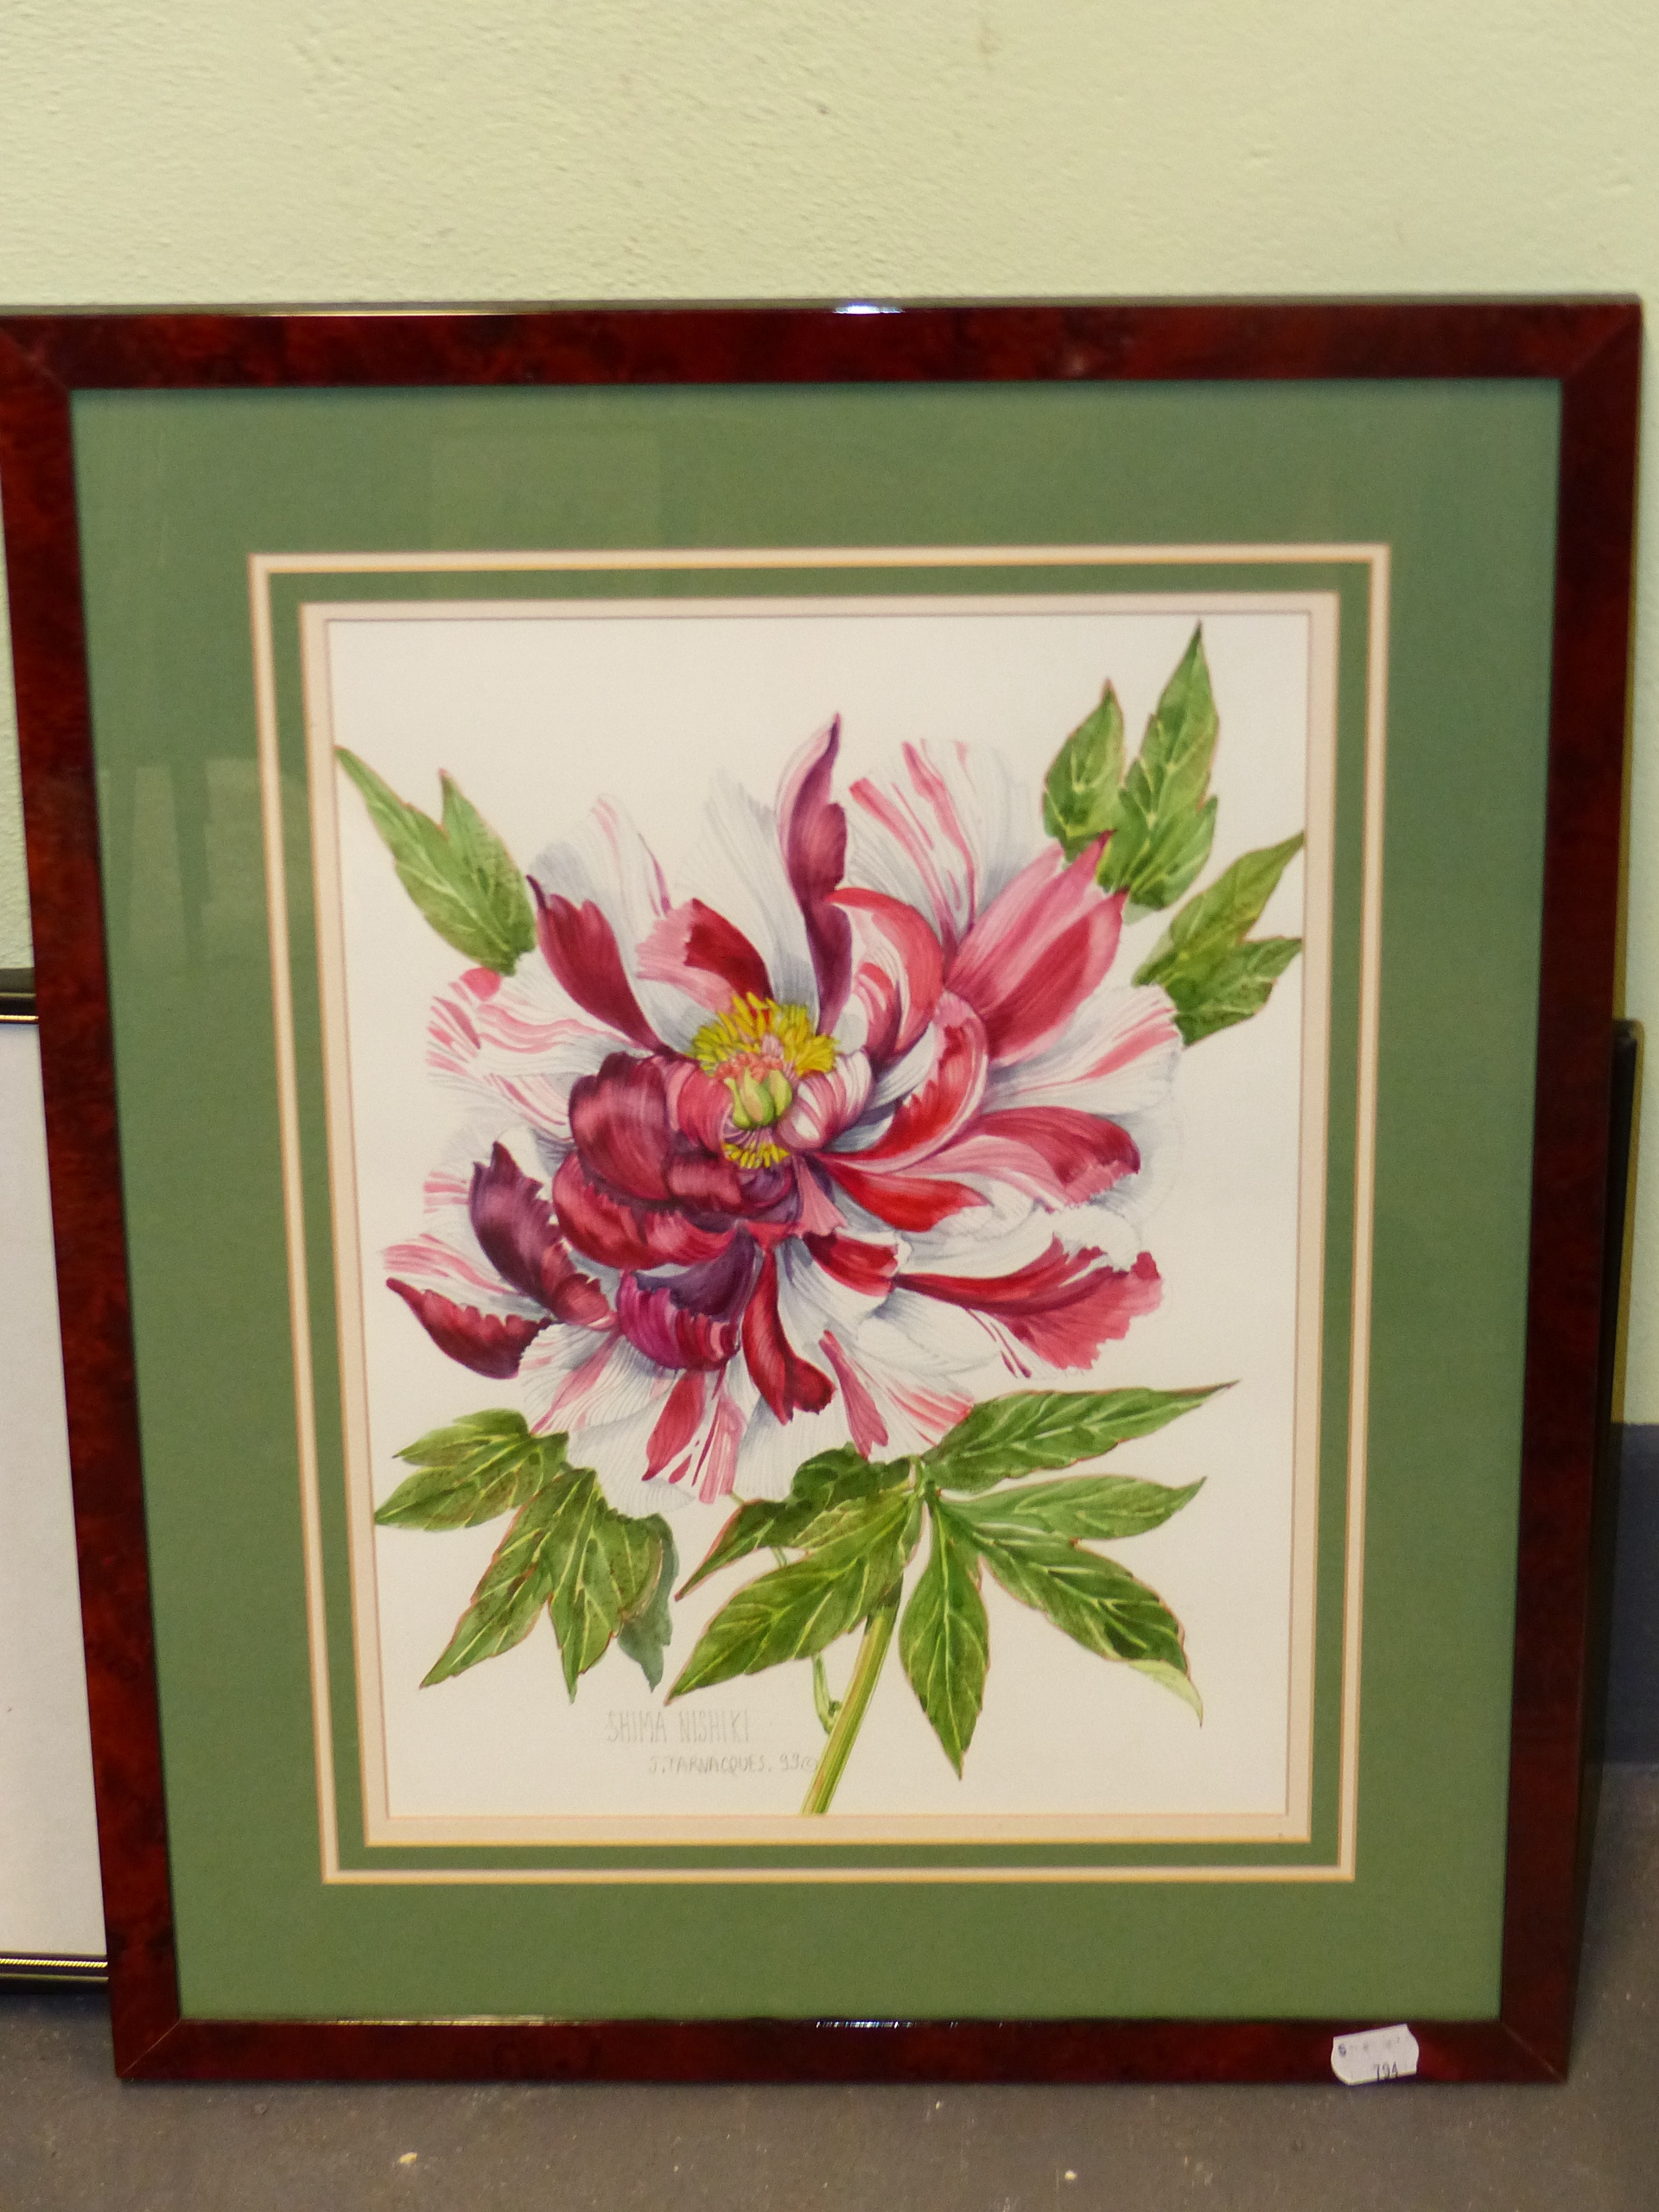 •J. FARVACQUES (20th CENTURY SCHOOL). ARR. THREE BOTANICAL STUDIES, BOTH SIGNED WATERCOLOURS. 36 x - Image 2 of 6